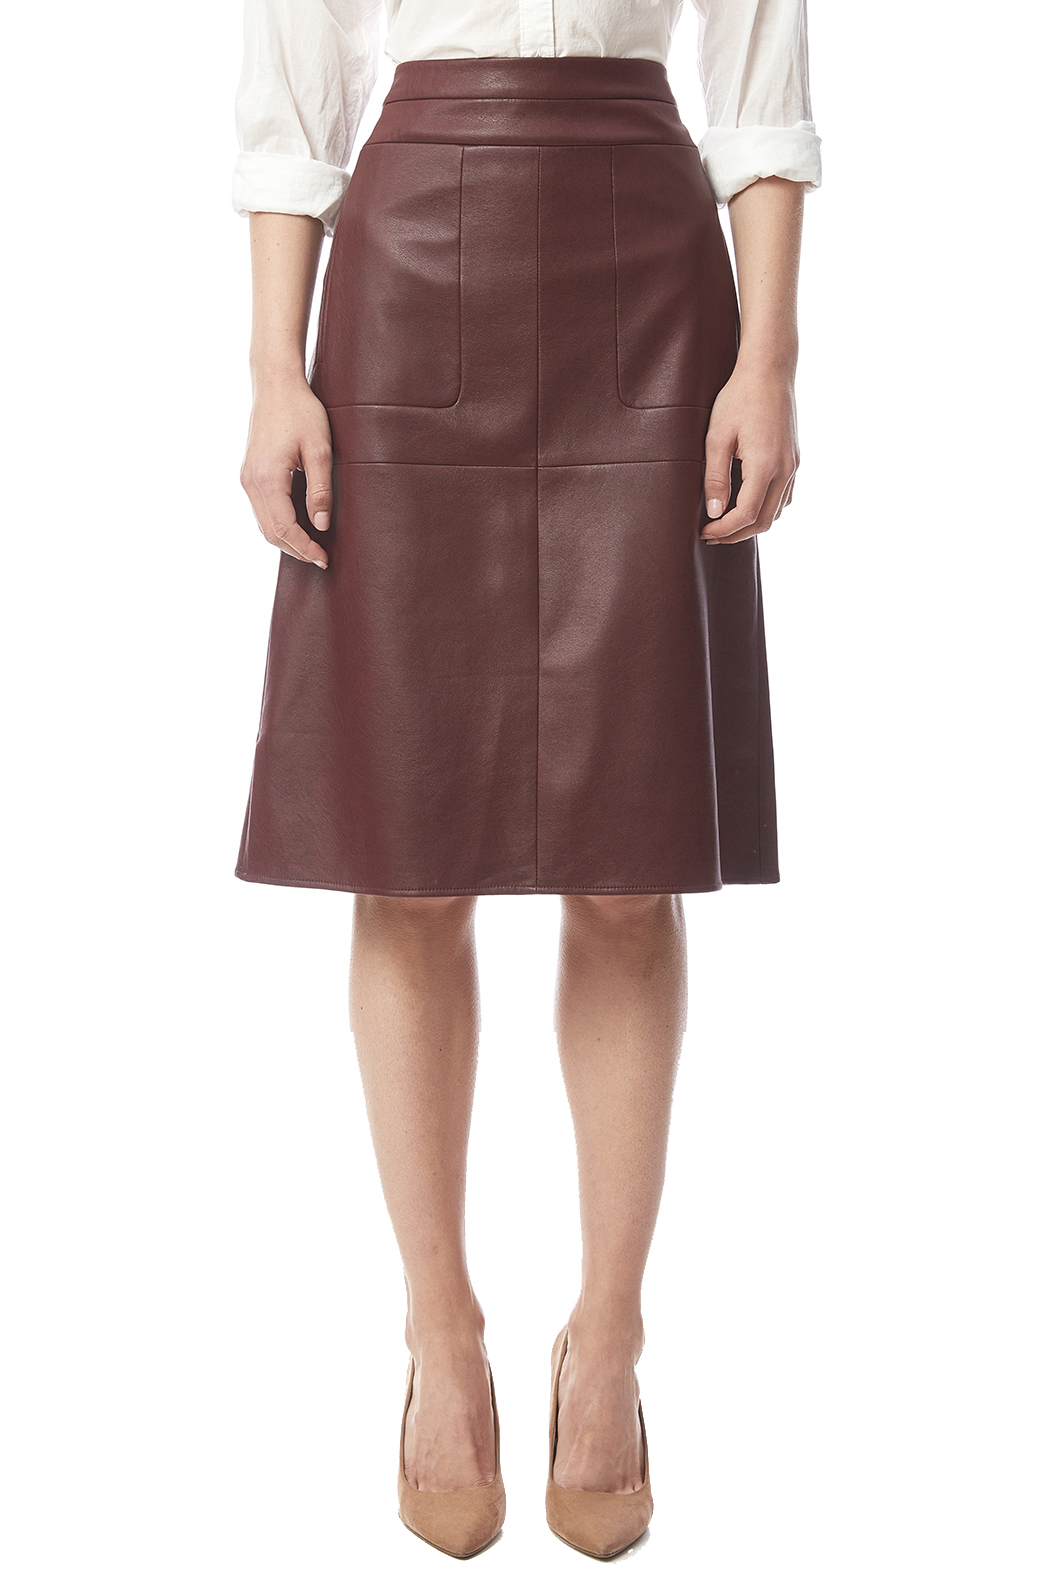 bcbg max azria faux leather a line skirt from by